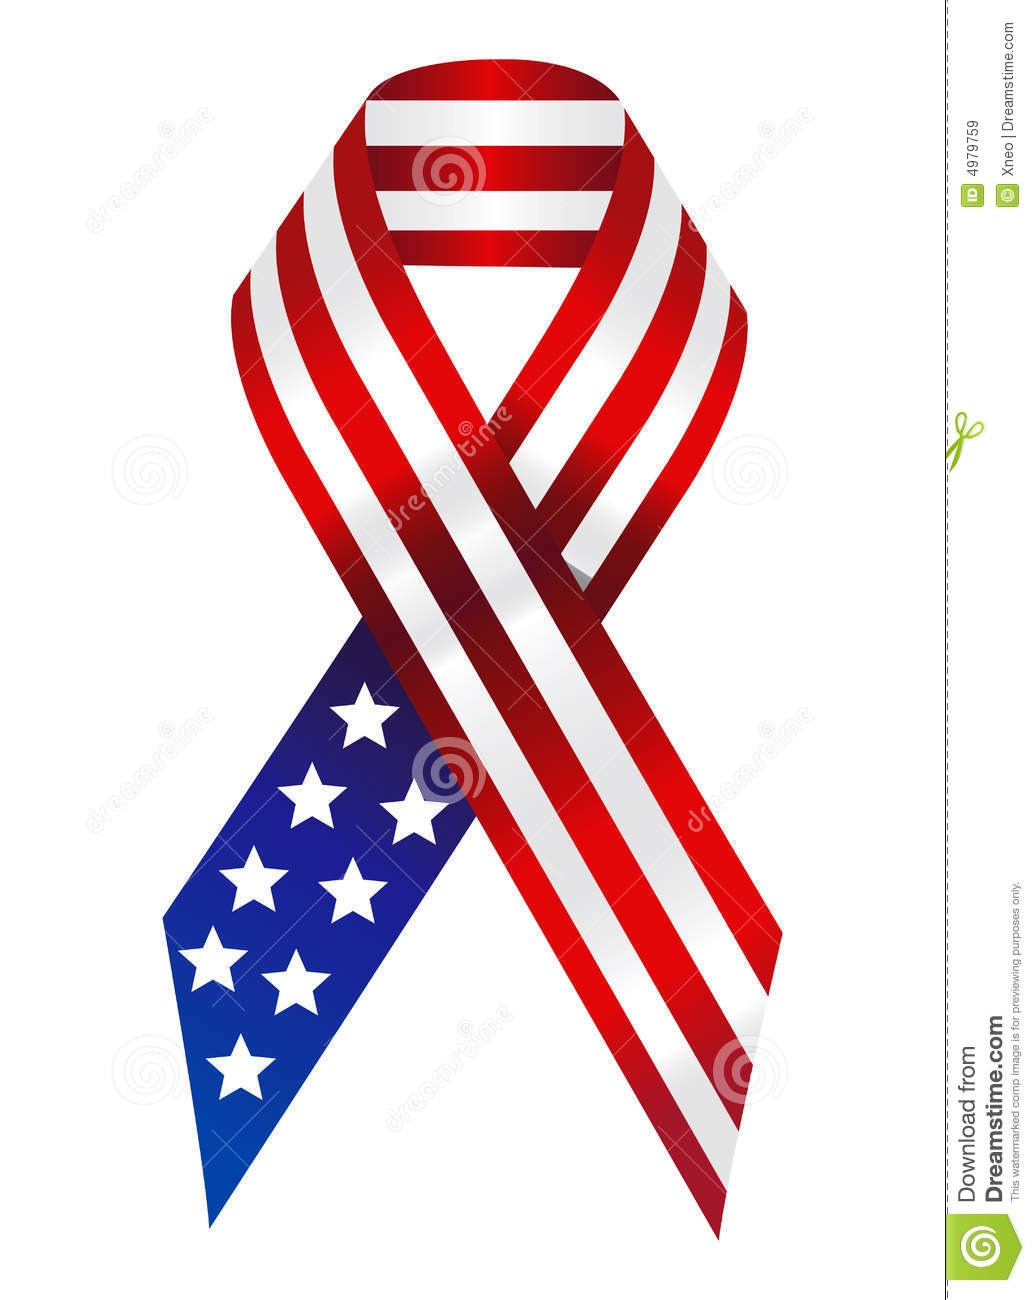 America clipart ribbon. Free flags of the